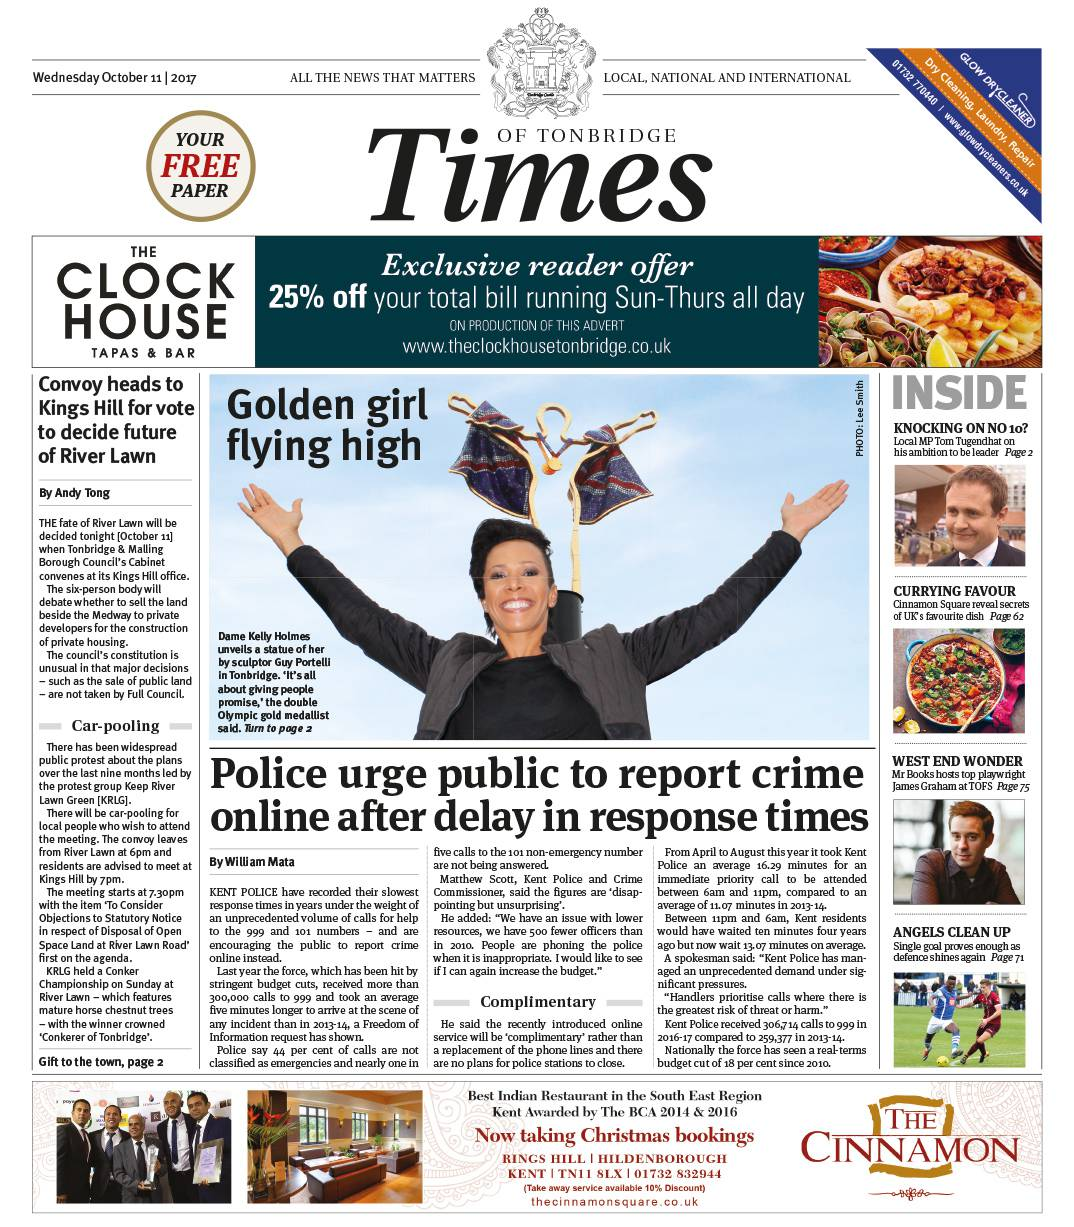 Read the Times of Tonbridge 11th October 2017